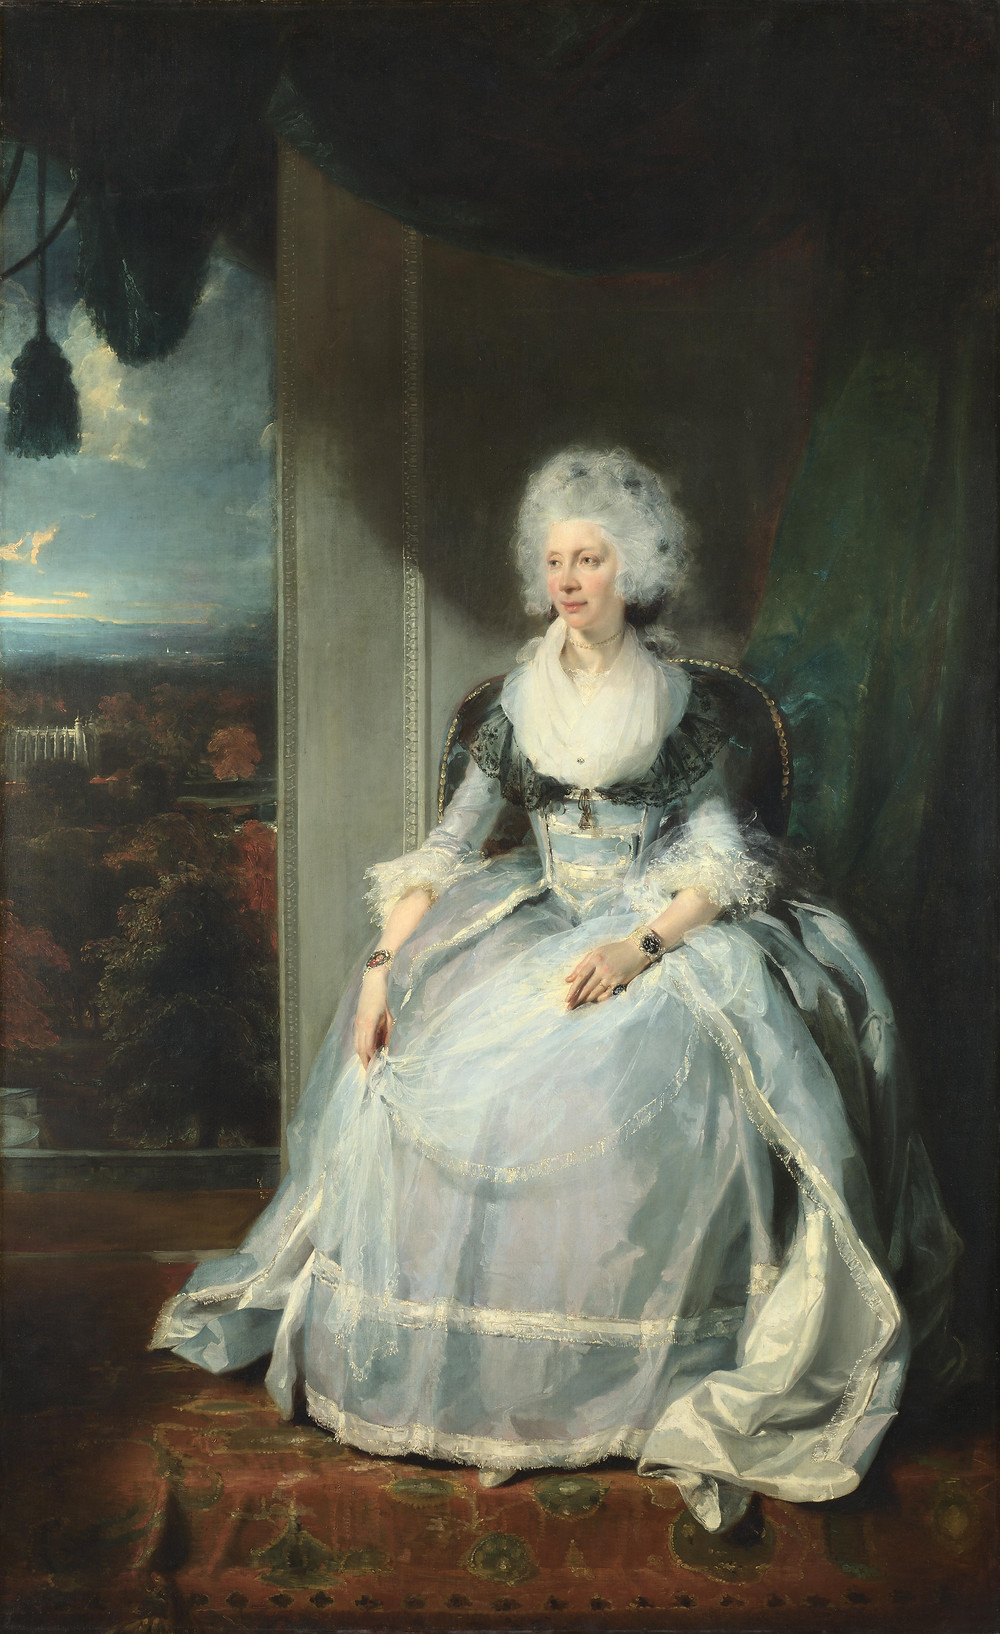 Queen Charlotte, the wife of King George III, portrait painting by Sir Thomas Lawrence, 1789